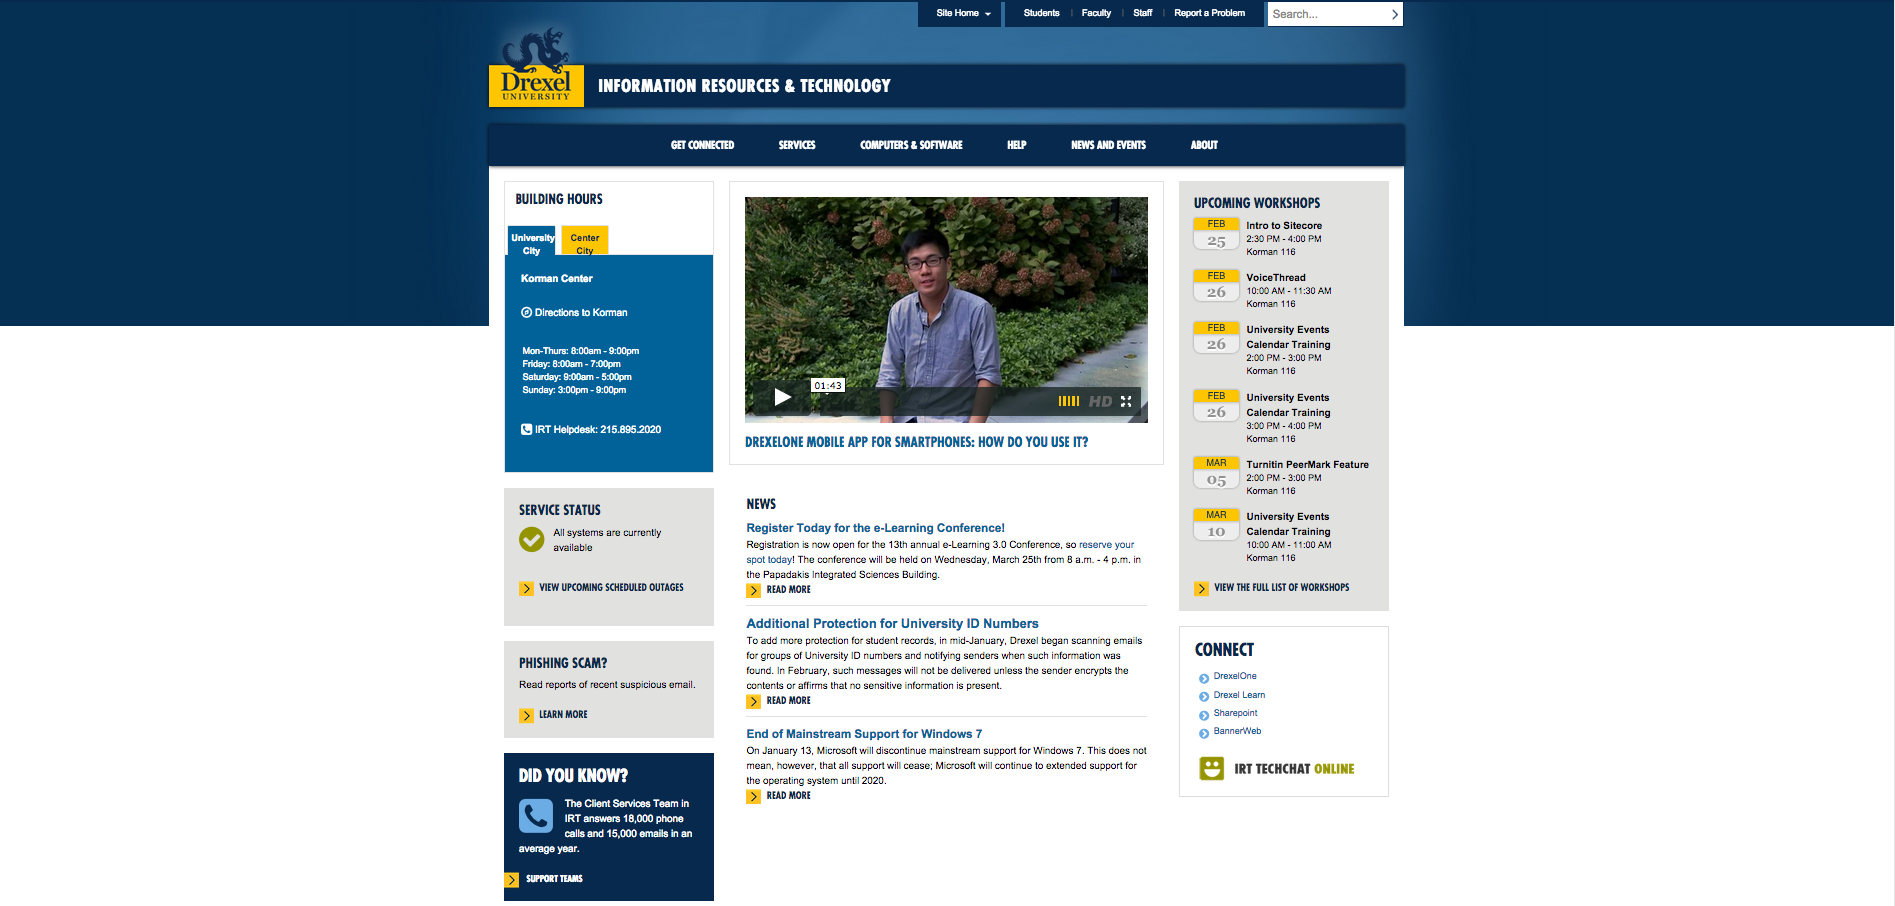 small font on drexel irt page